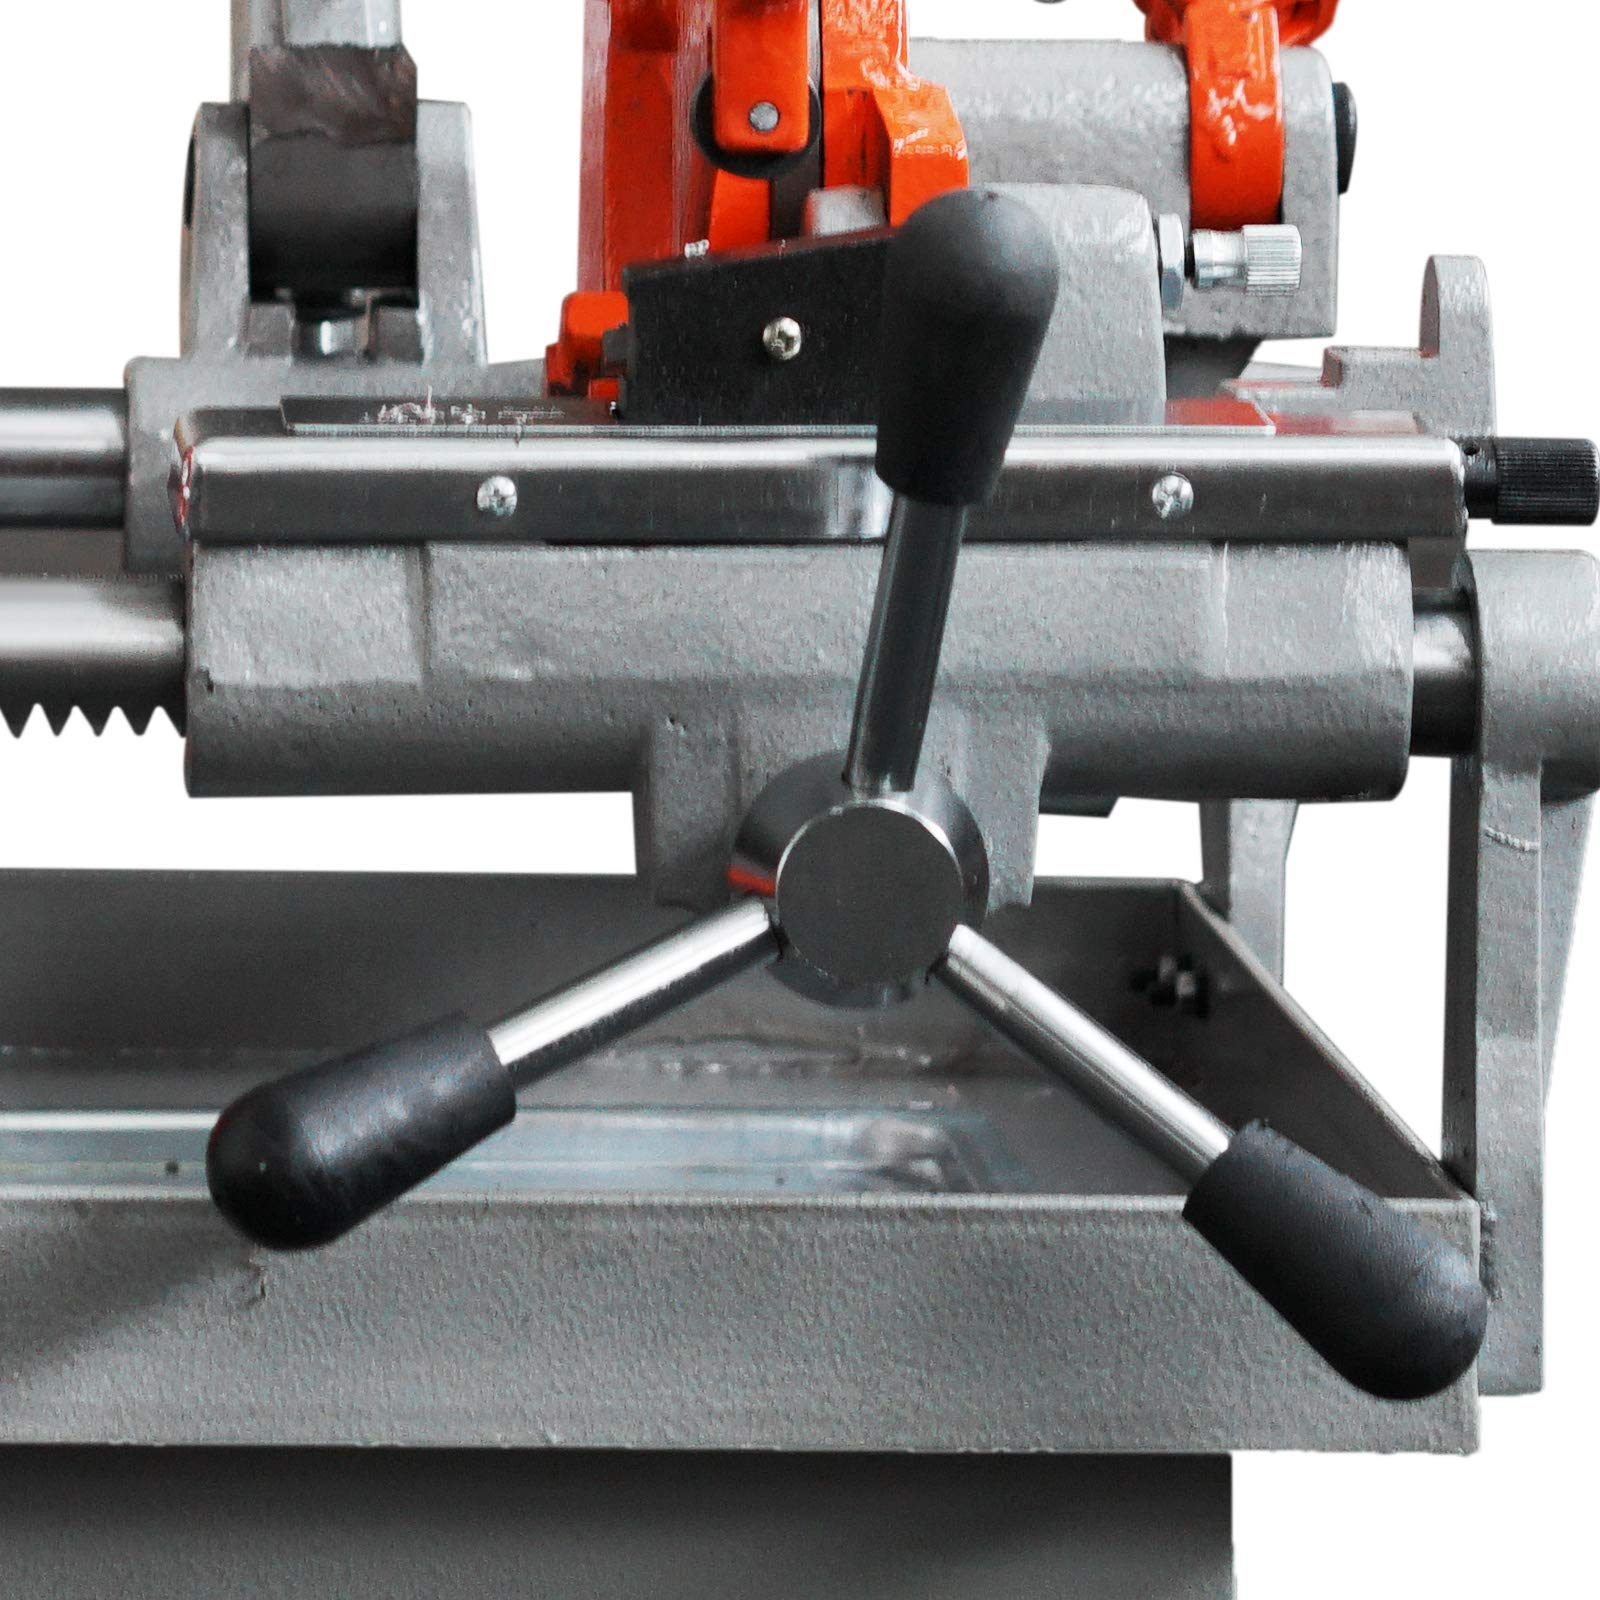 Mophorn Electric Pipe Threading Machine 1/2''-4'' Pipe Threading Cutter 750W Deburrer NPT P100 Upstanding by Mophorn (Image #6)